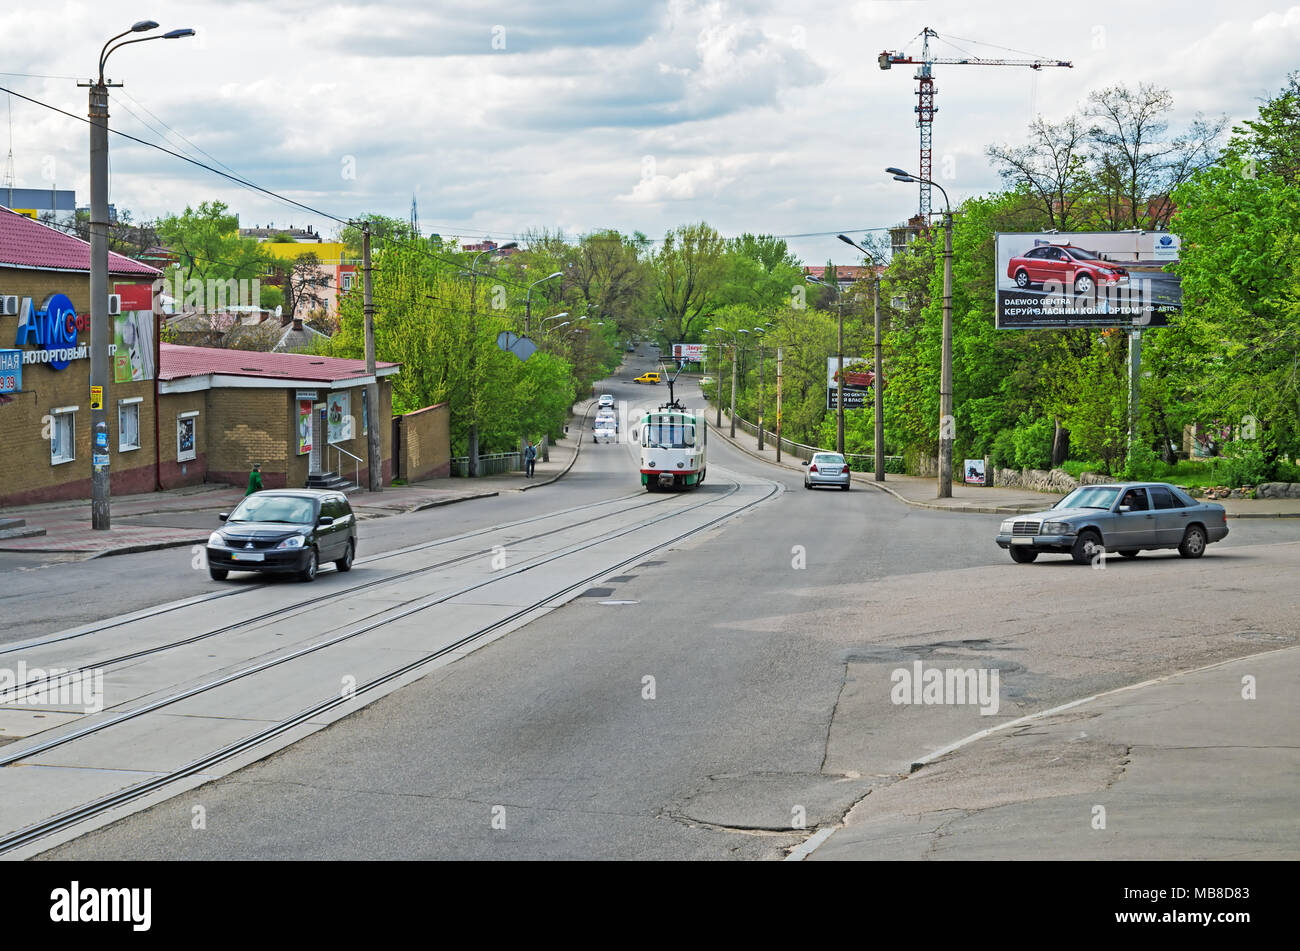 Dnipro, Ukraine - April 19, 2016: Small city crossroad with tram tracks in middle of spring early in the evening - Stock Image